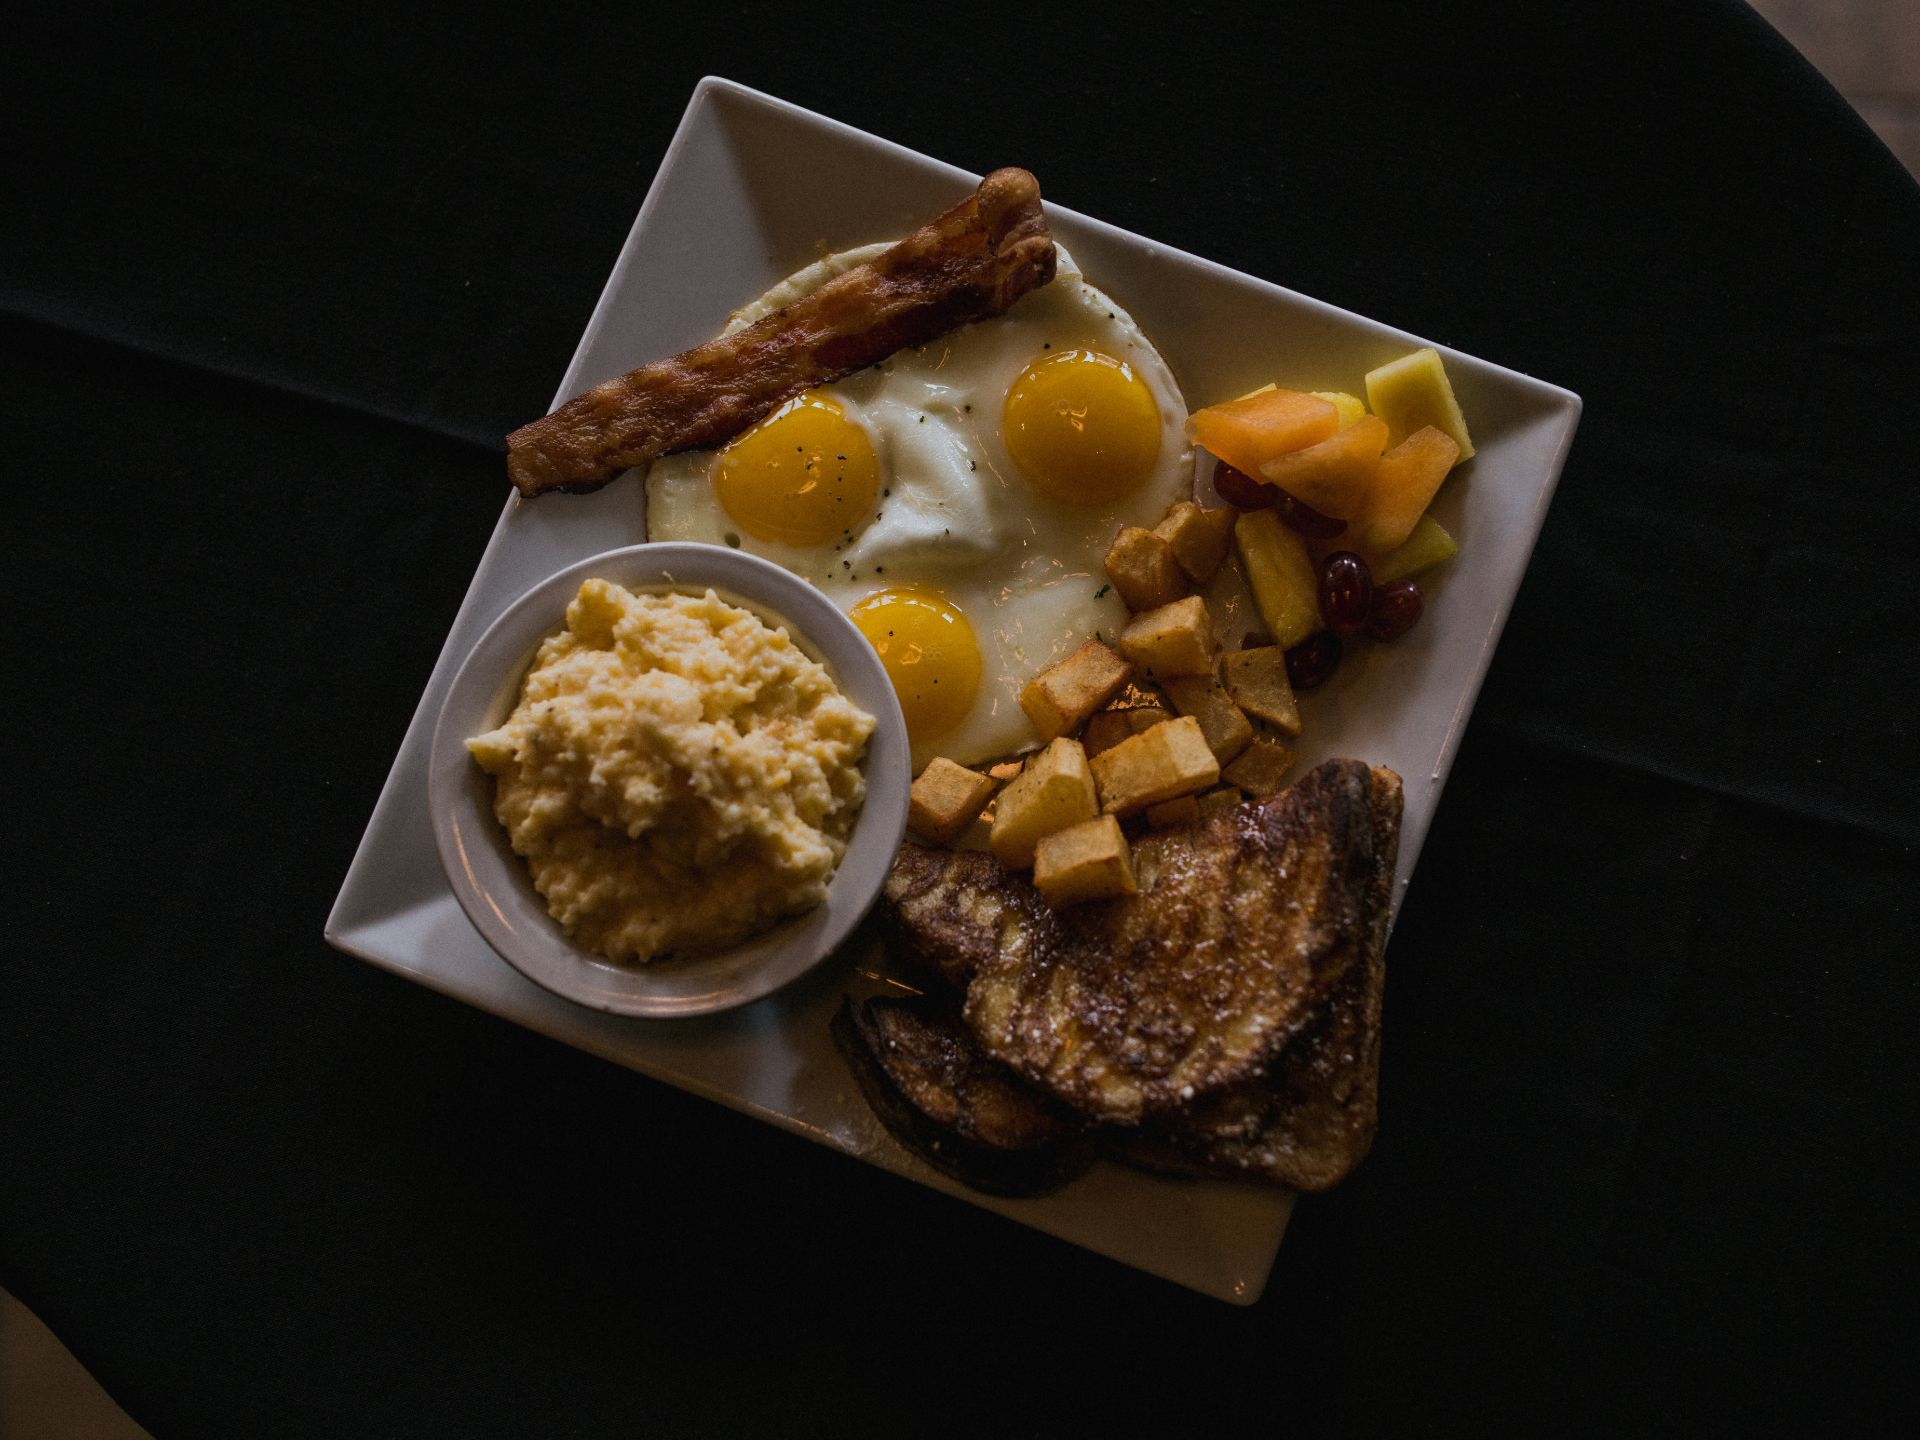 Top-down view of three fried eggs on a plate with breakfast potatoes, fresh cut fruit, bacon strip, French toast and a bowl of oatmeal